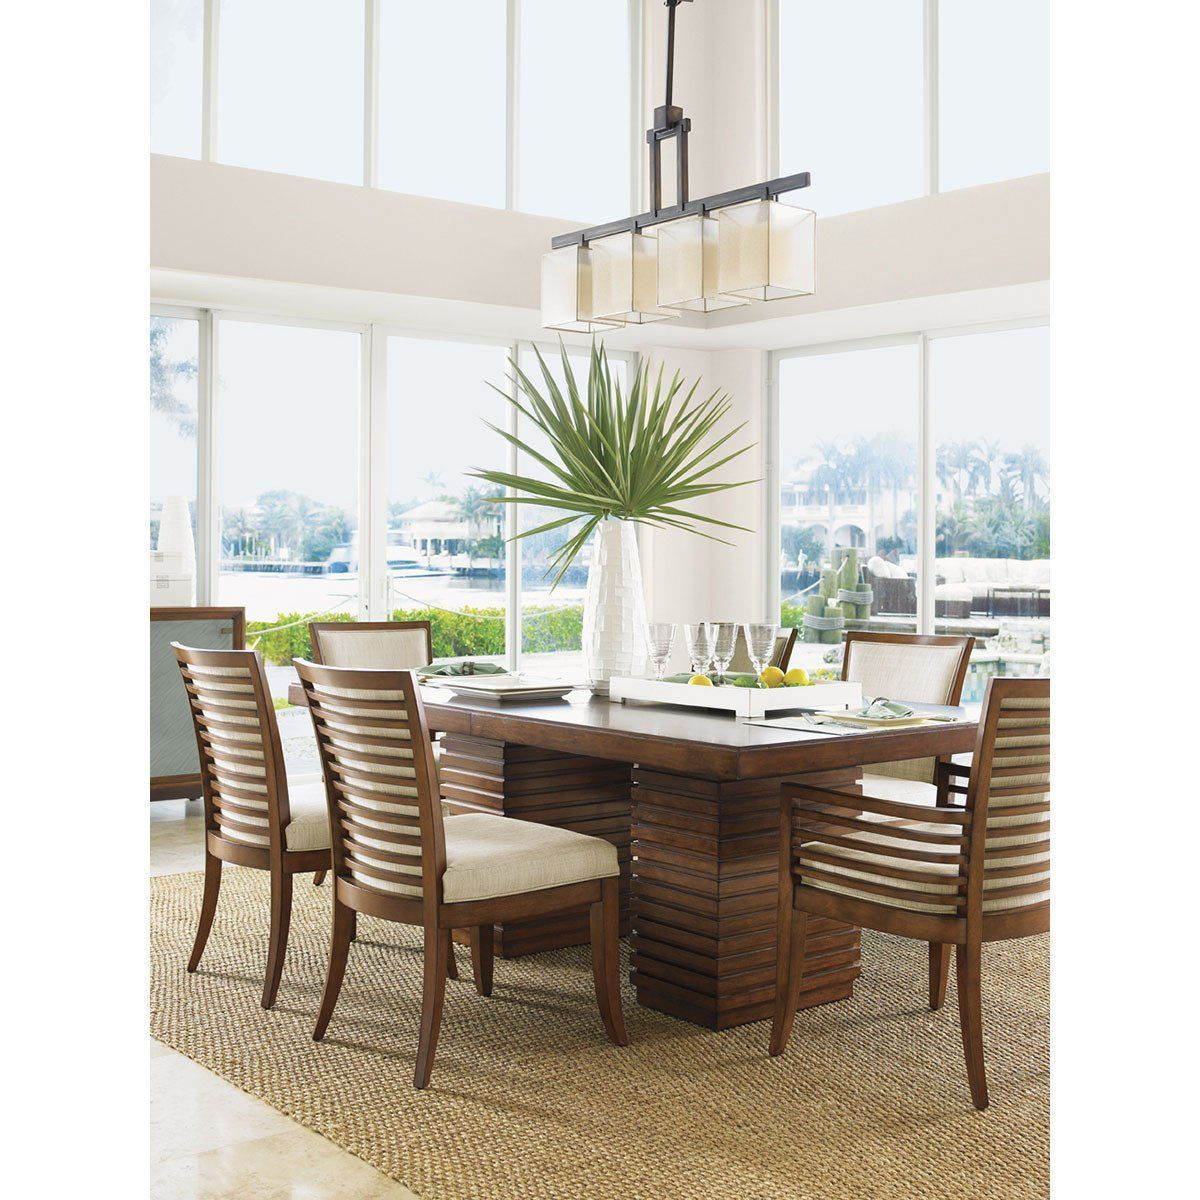 From Tommy Bahama Ocean Club Collection This Stunning Peninsula Dining Table Boasts A Modern Silhouette Made Up Of Clean Crisp Lines